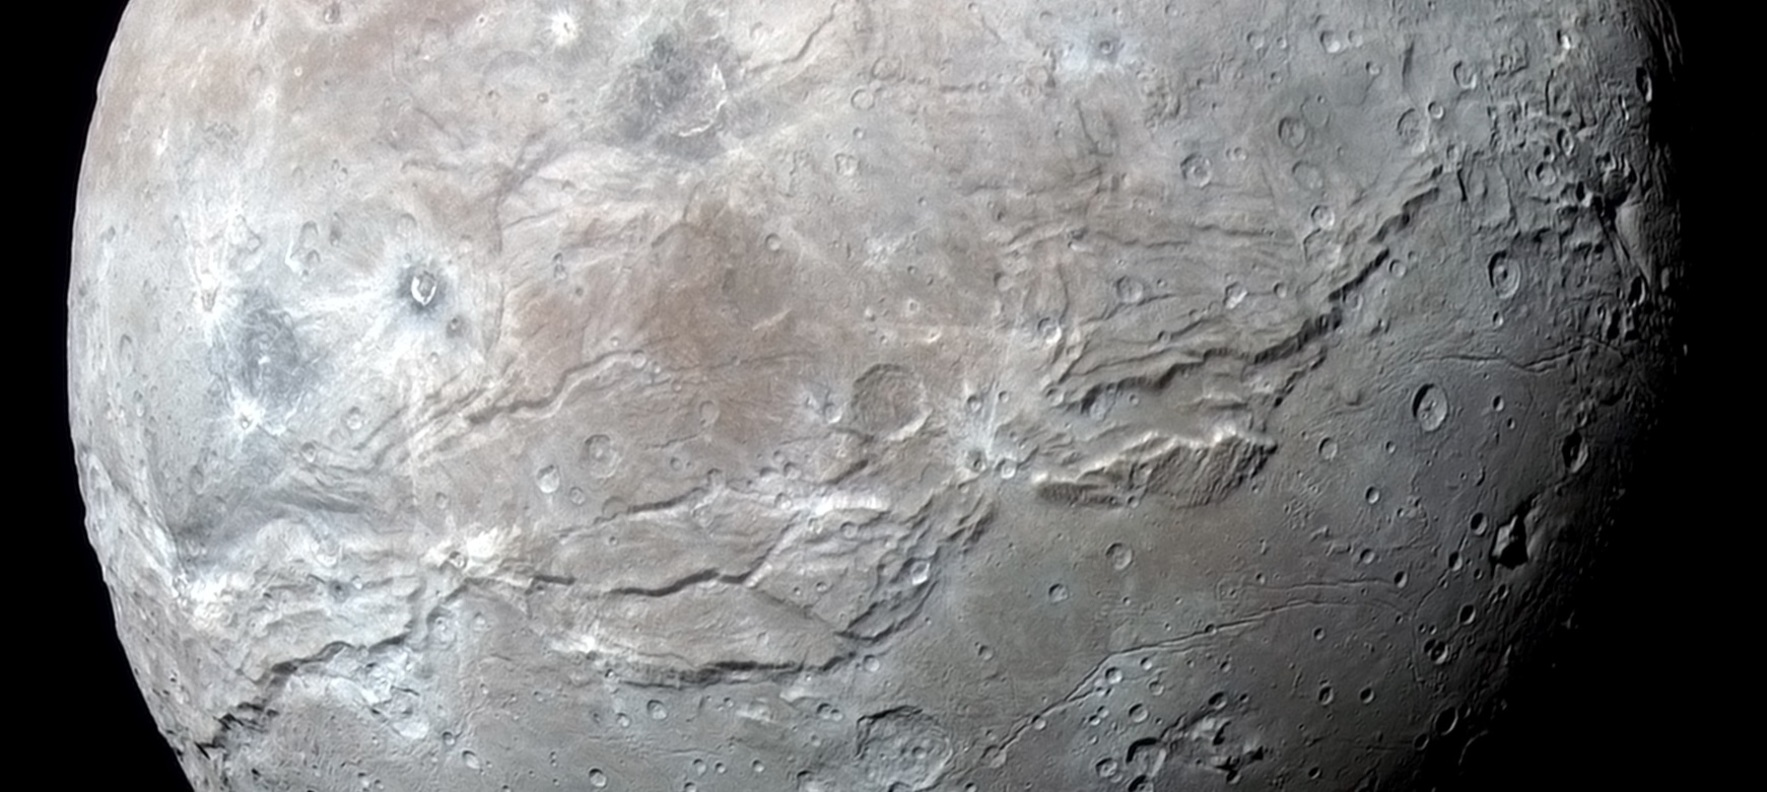 Charon's vast equatorial chasms. The most obvious ones are unofficially named Macross Chasma (on the left) and Serenity Chasma (on the right). – Image Credit: NASA/Johns Hopkins University Applied Physics Laboratory/Southwest Research Institute